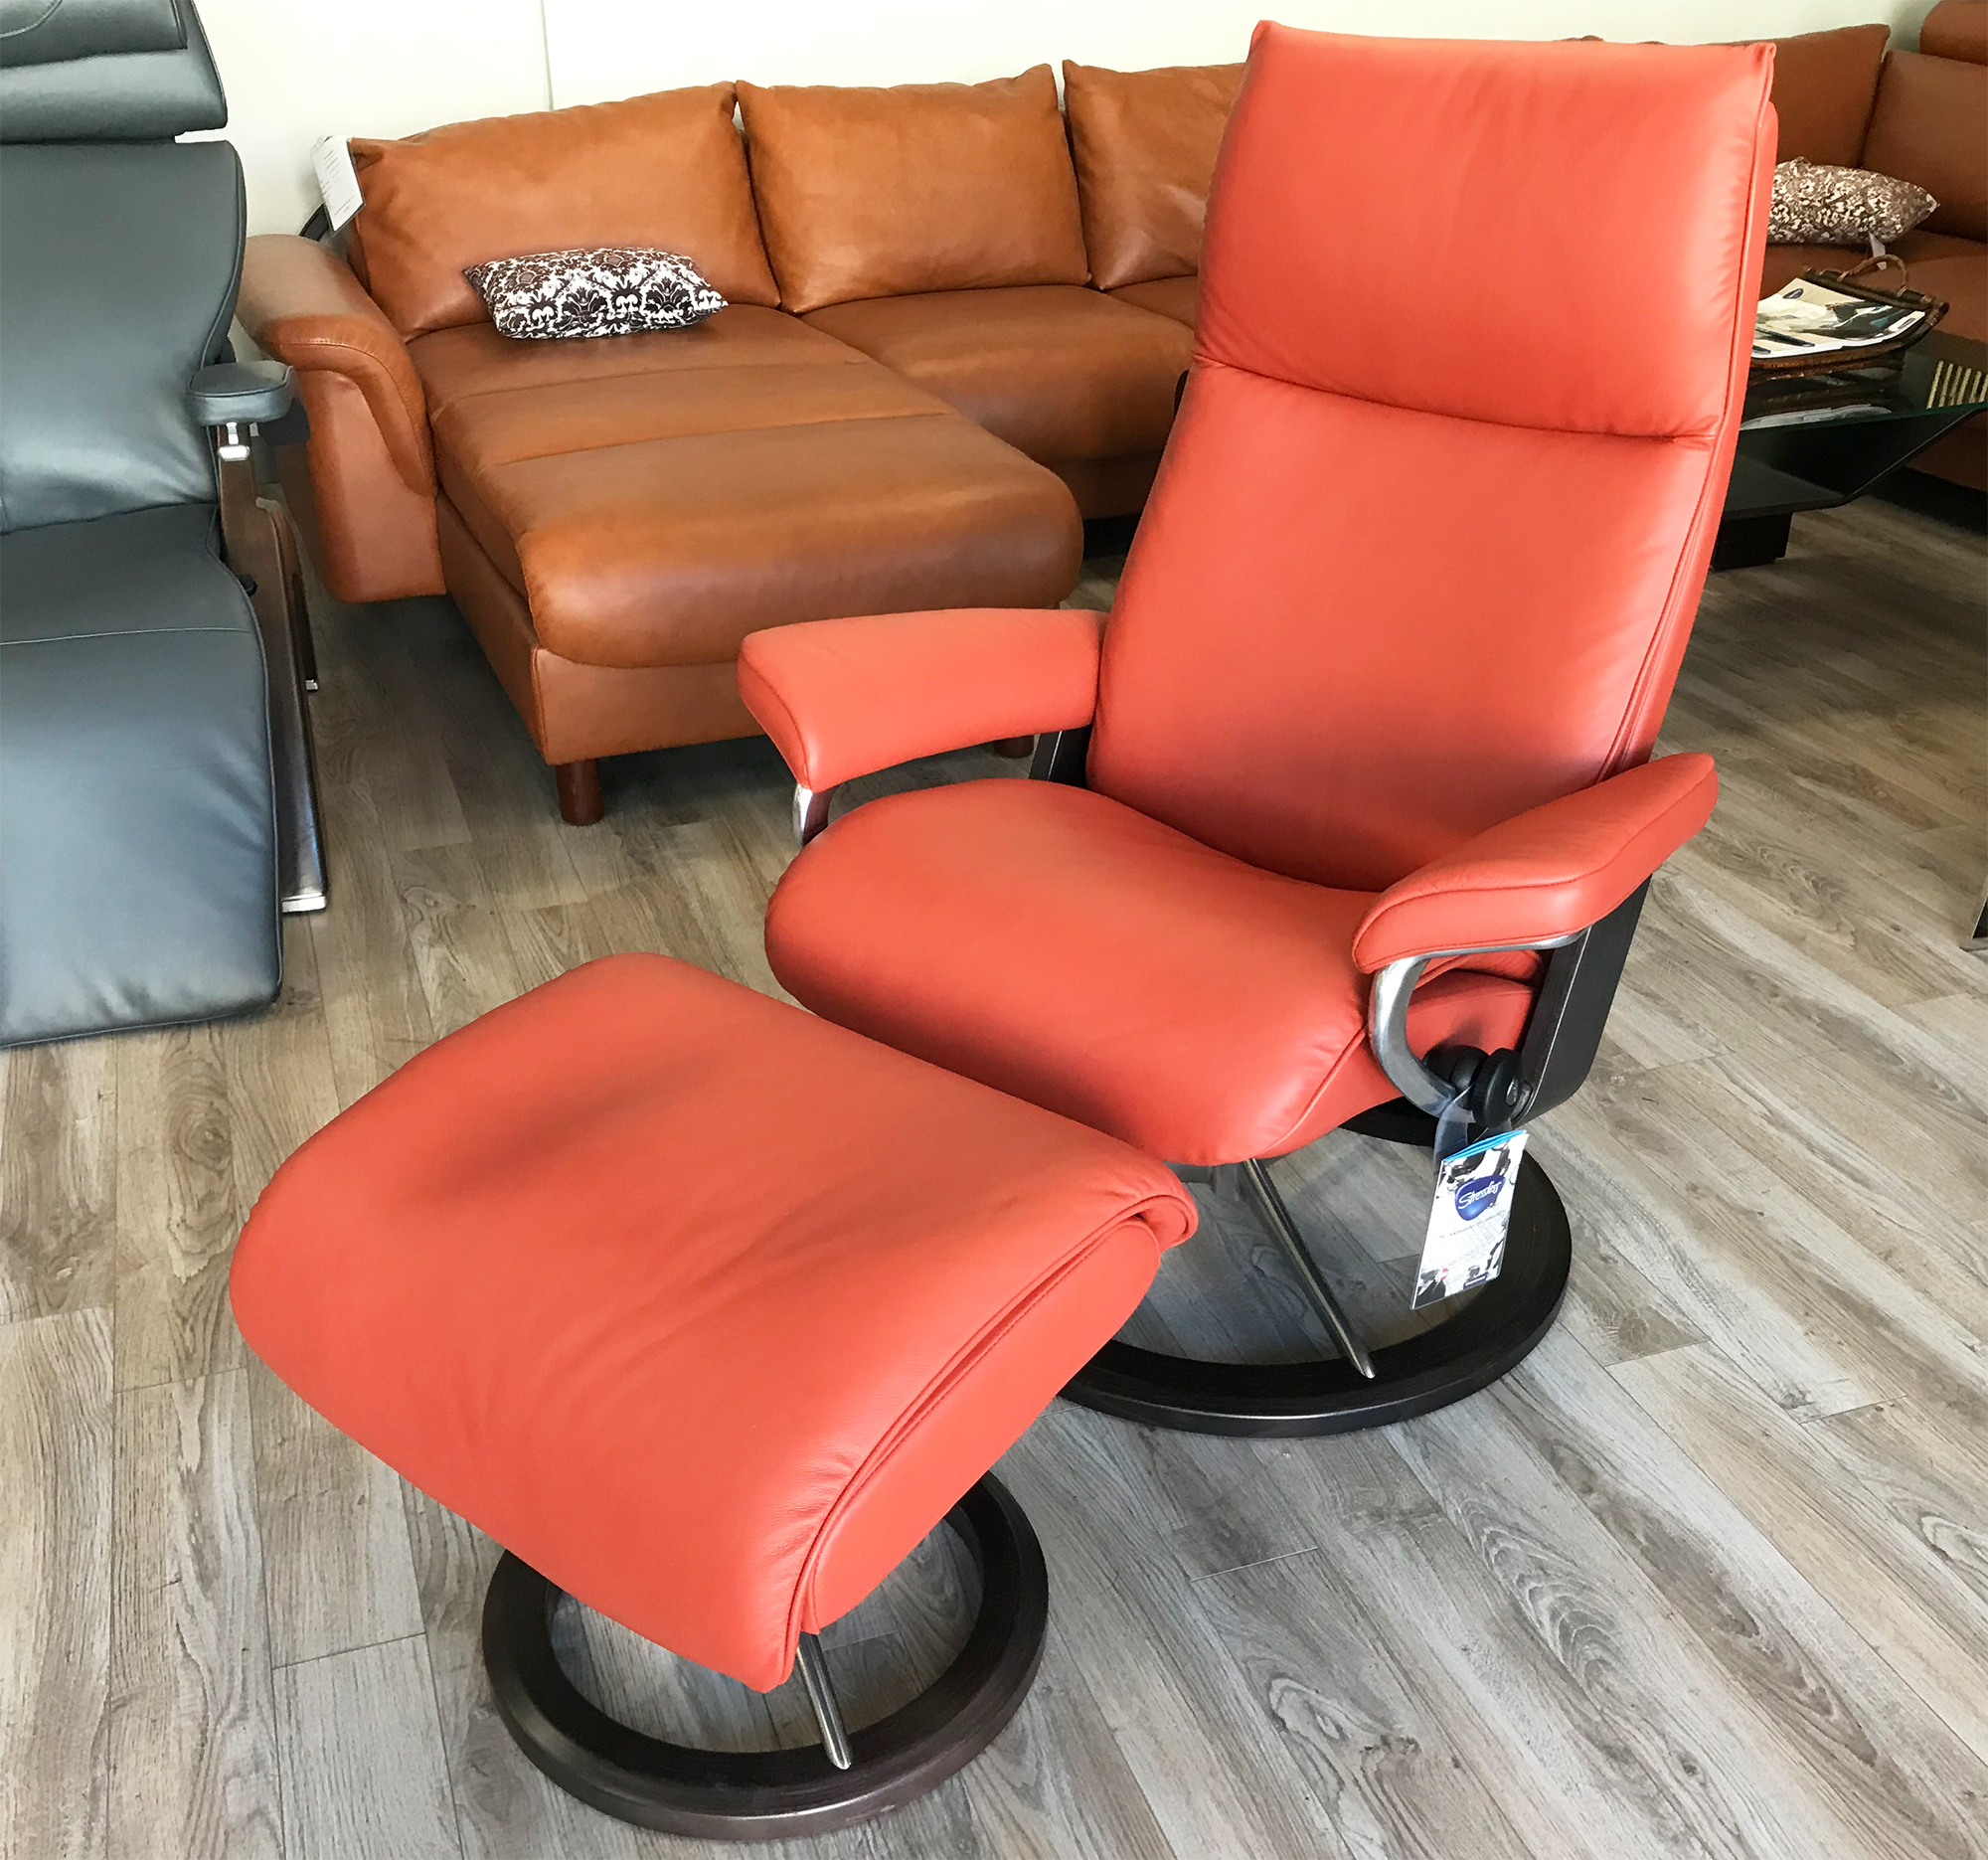 Leather Chairs With Ottoman Stressless Aura Recliner Chair And Ottoman In Paloma Henna Leather By Ekornes